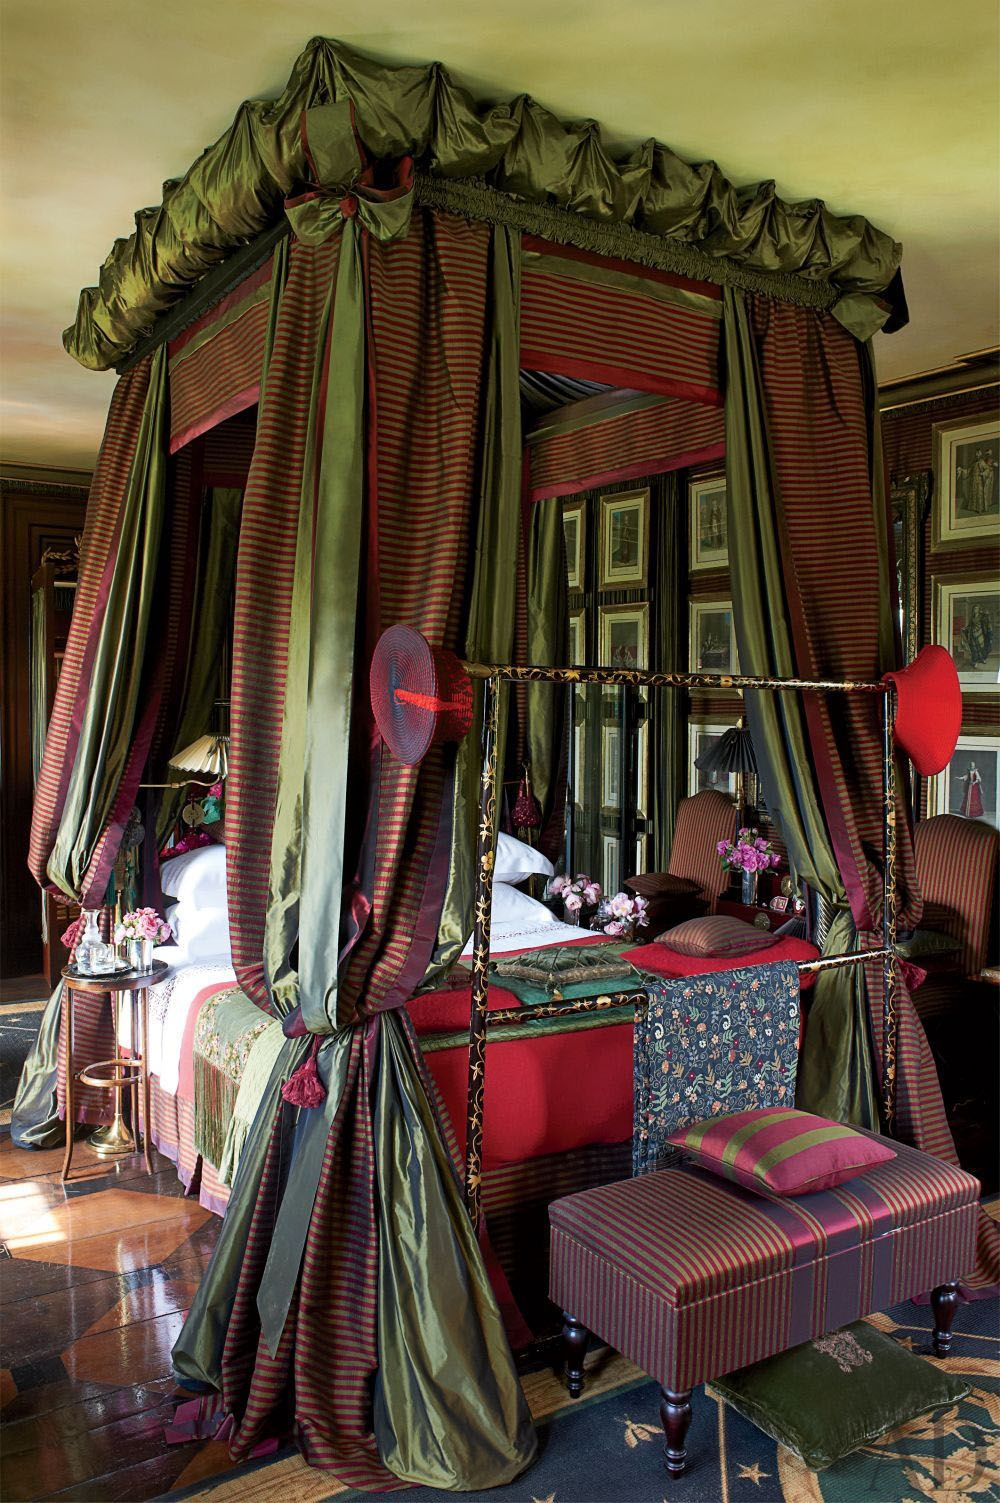 25 Glamorous Canopy Beds for Romantic and